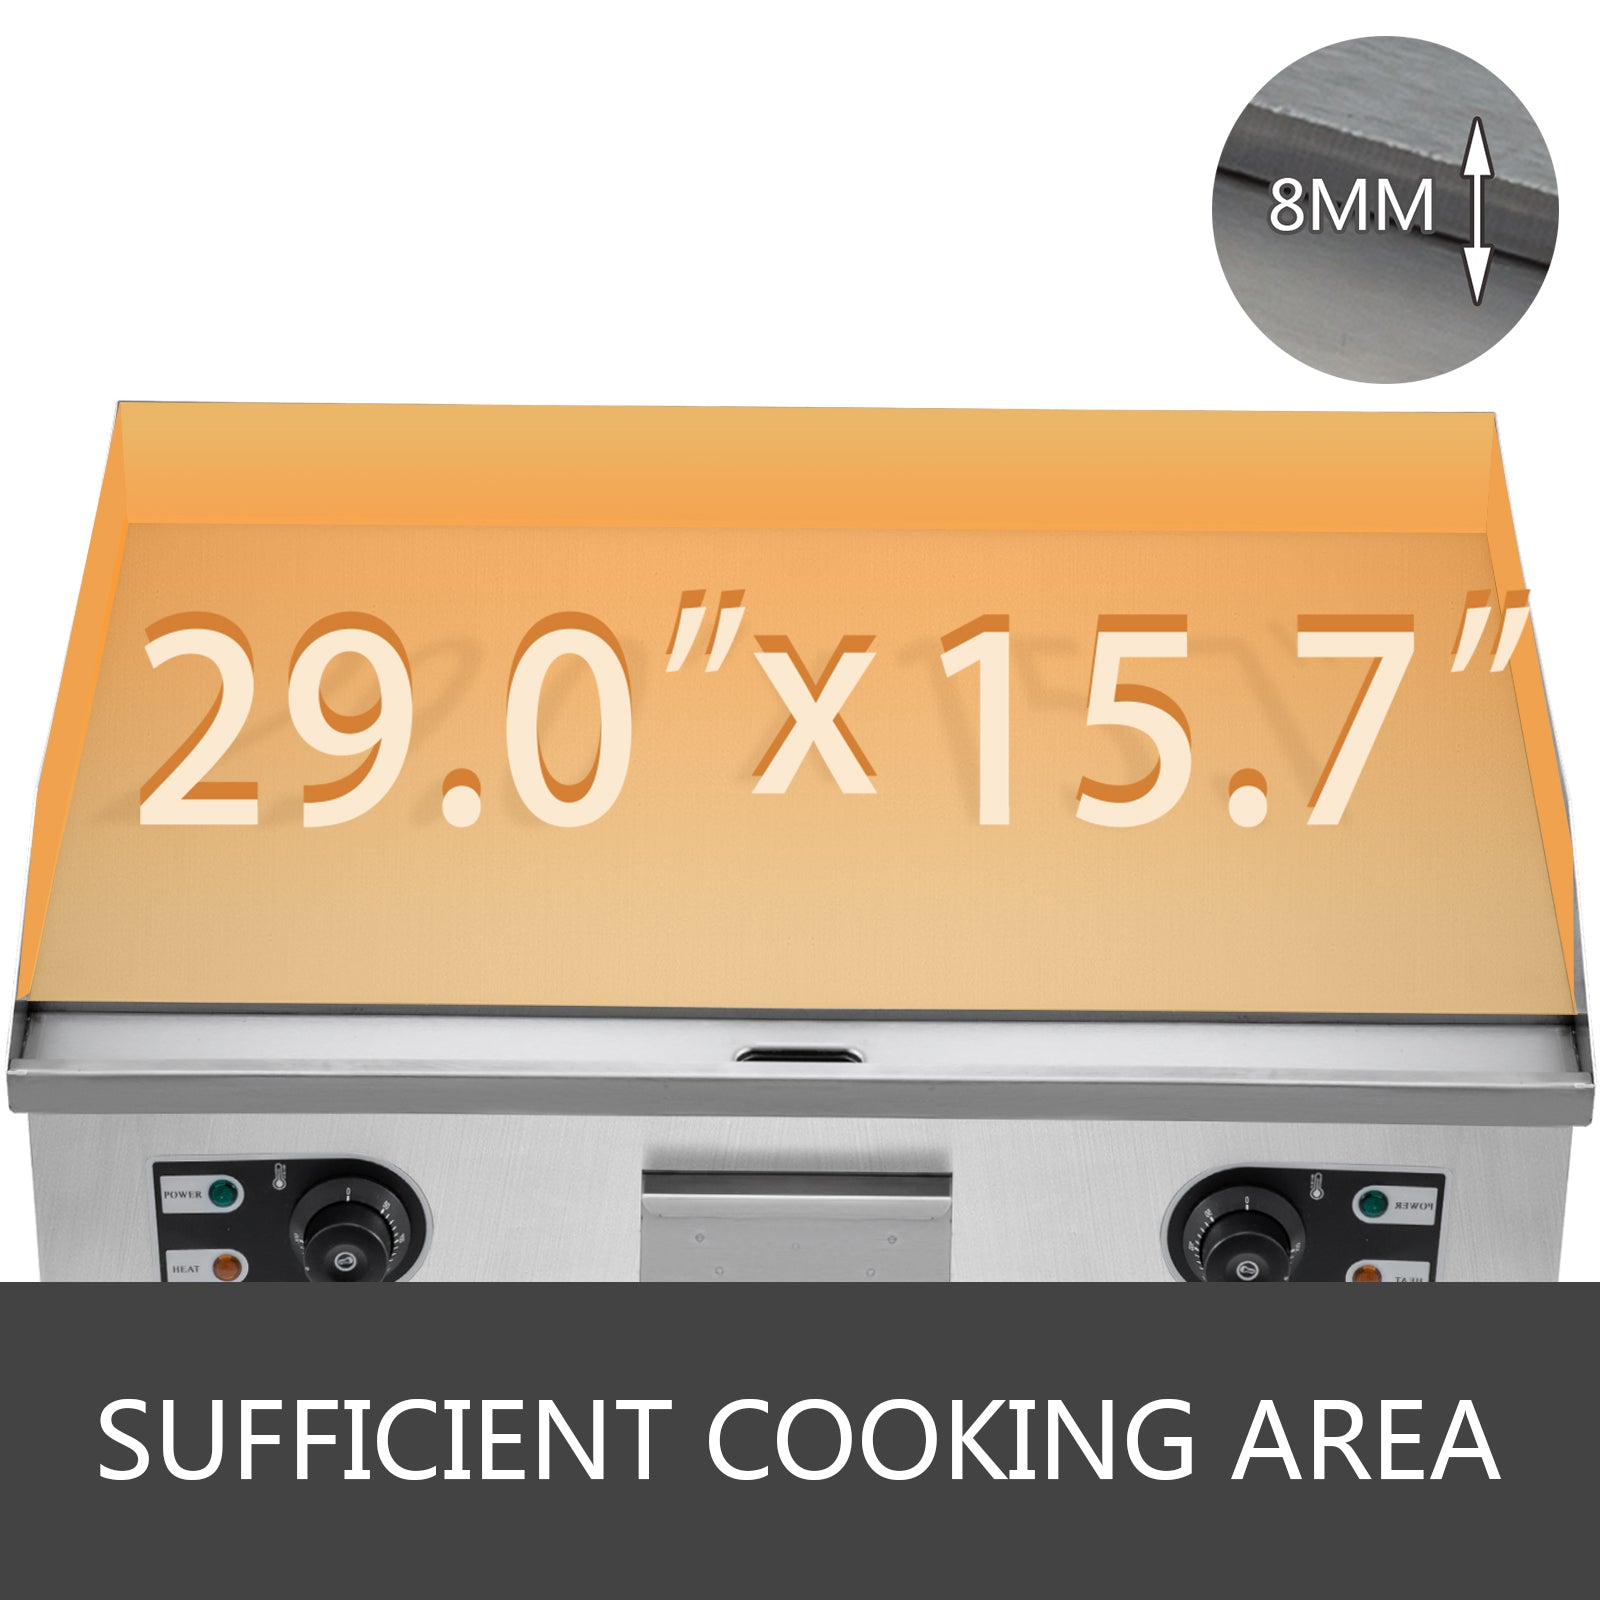 3000W Commercial Electric Grill Griddle Stainless Steel Restaurant Teppanyaki Grill Countertop Flat Top Griddle Flat Bakeware Nonstick Kitchen Appliance